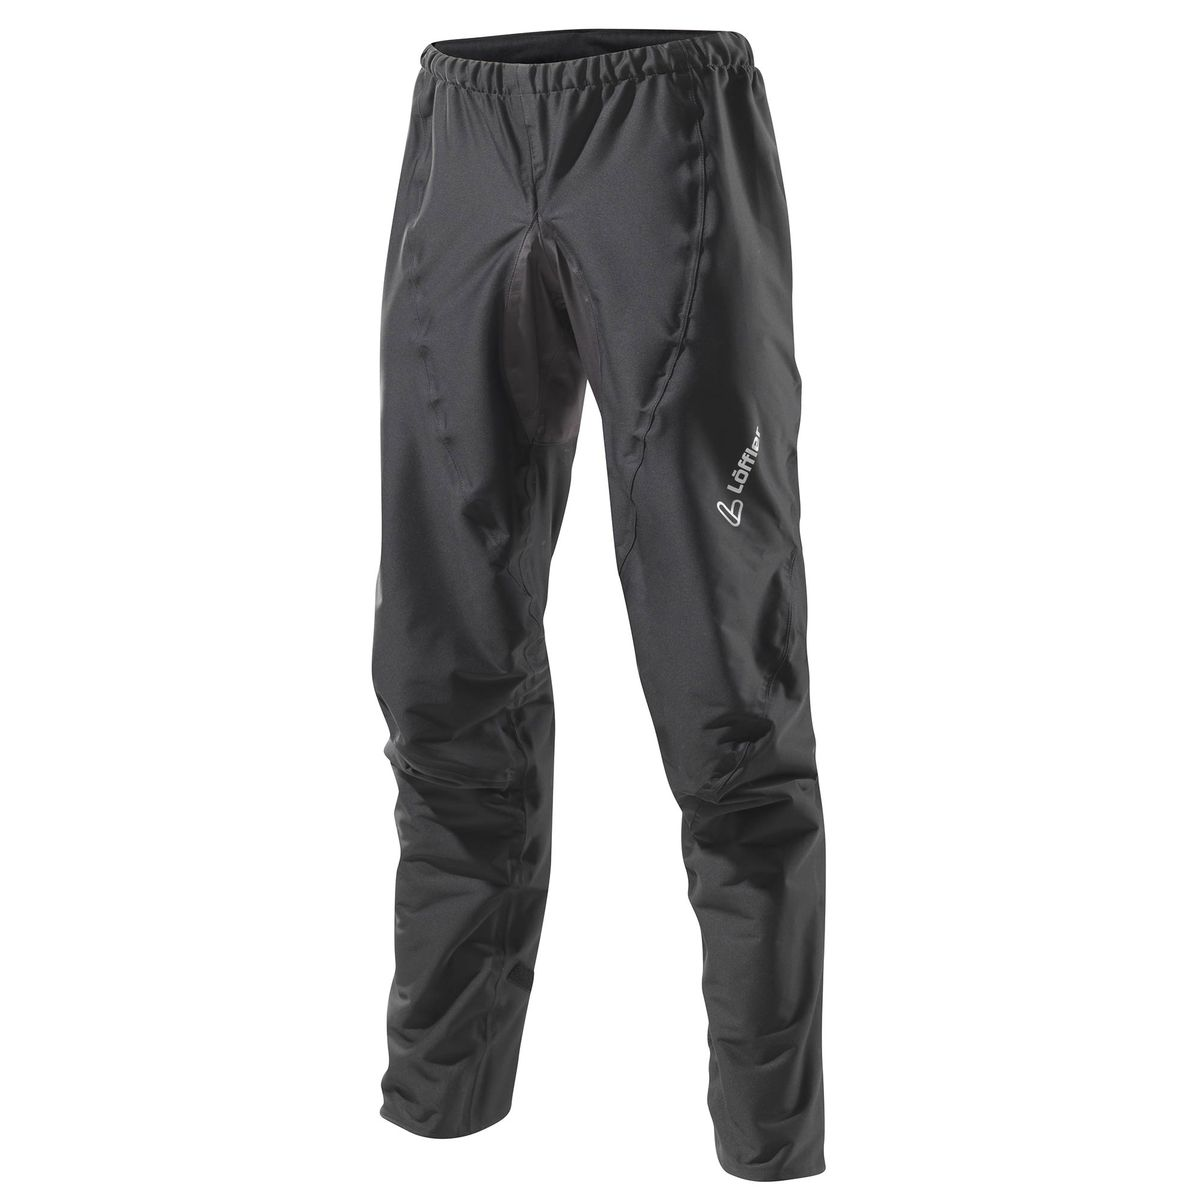 GTX ACTIVE overtrousers